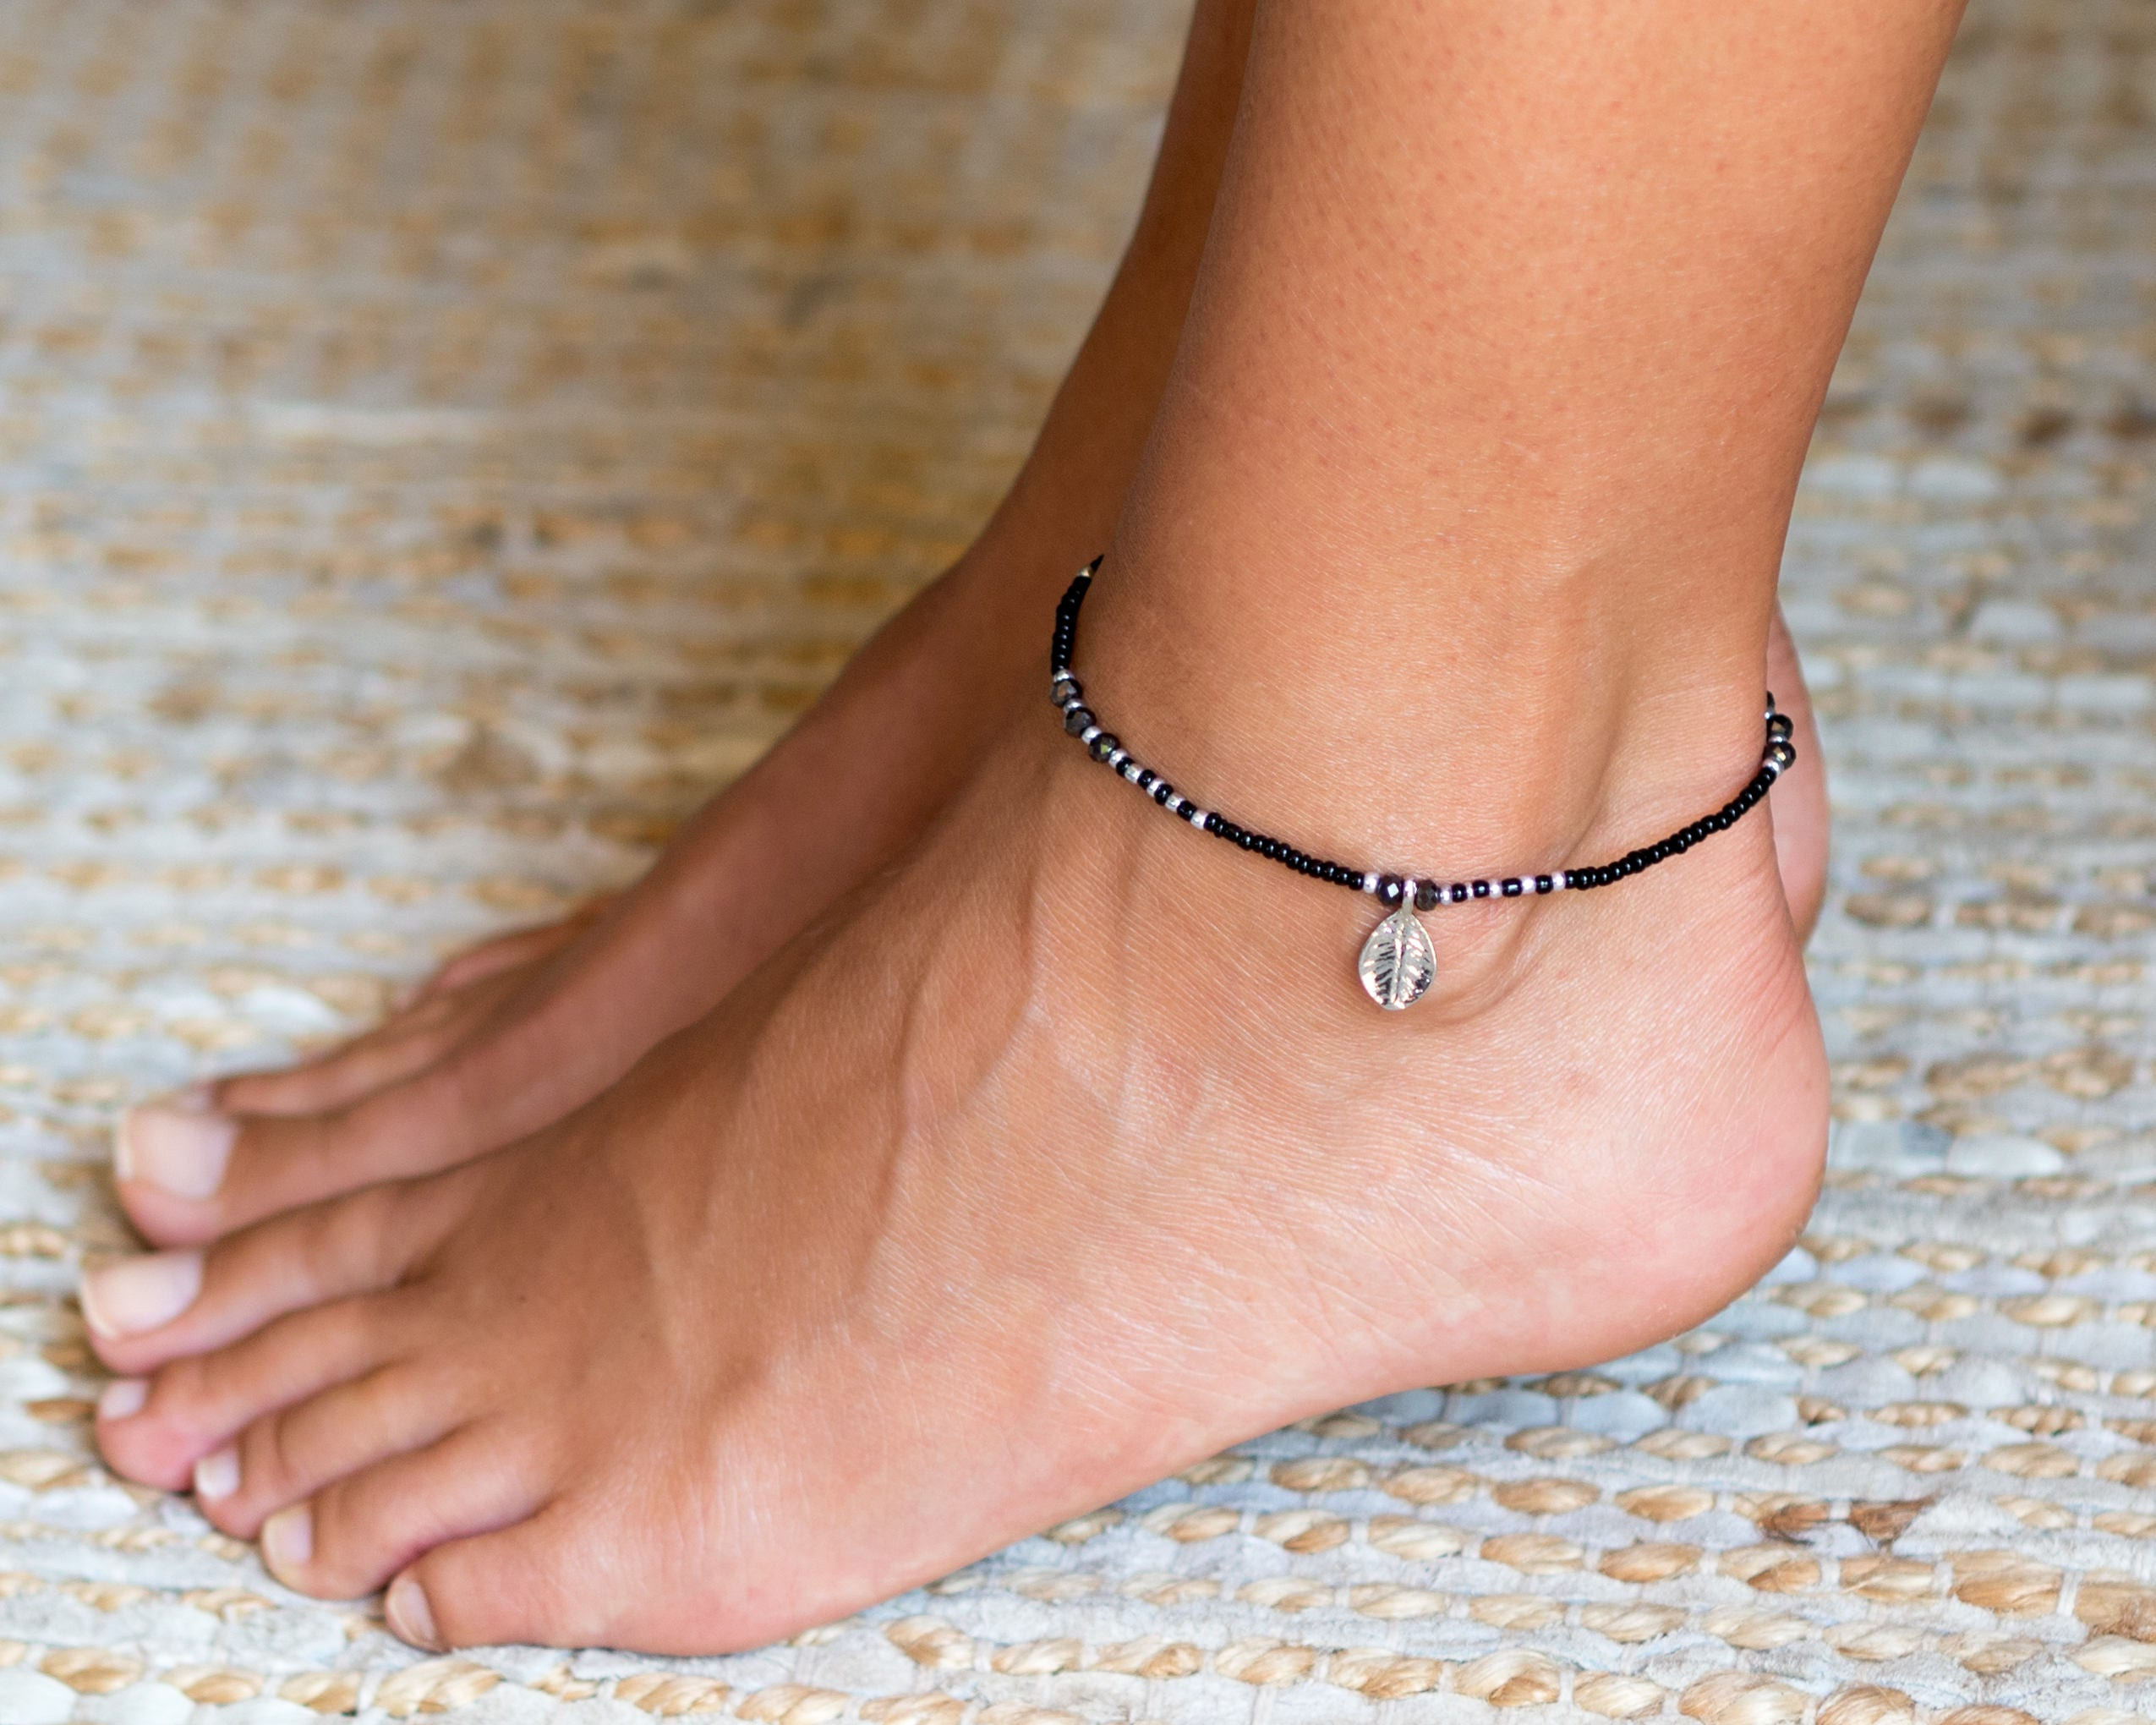 bracelet product ankle evil flops sandal barefoot anklet eye info bracelets and ring toe store popular florida